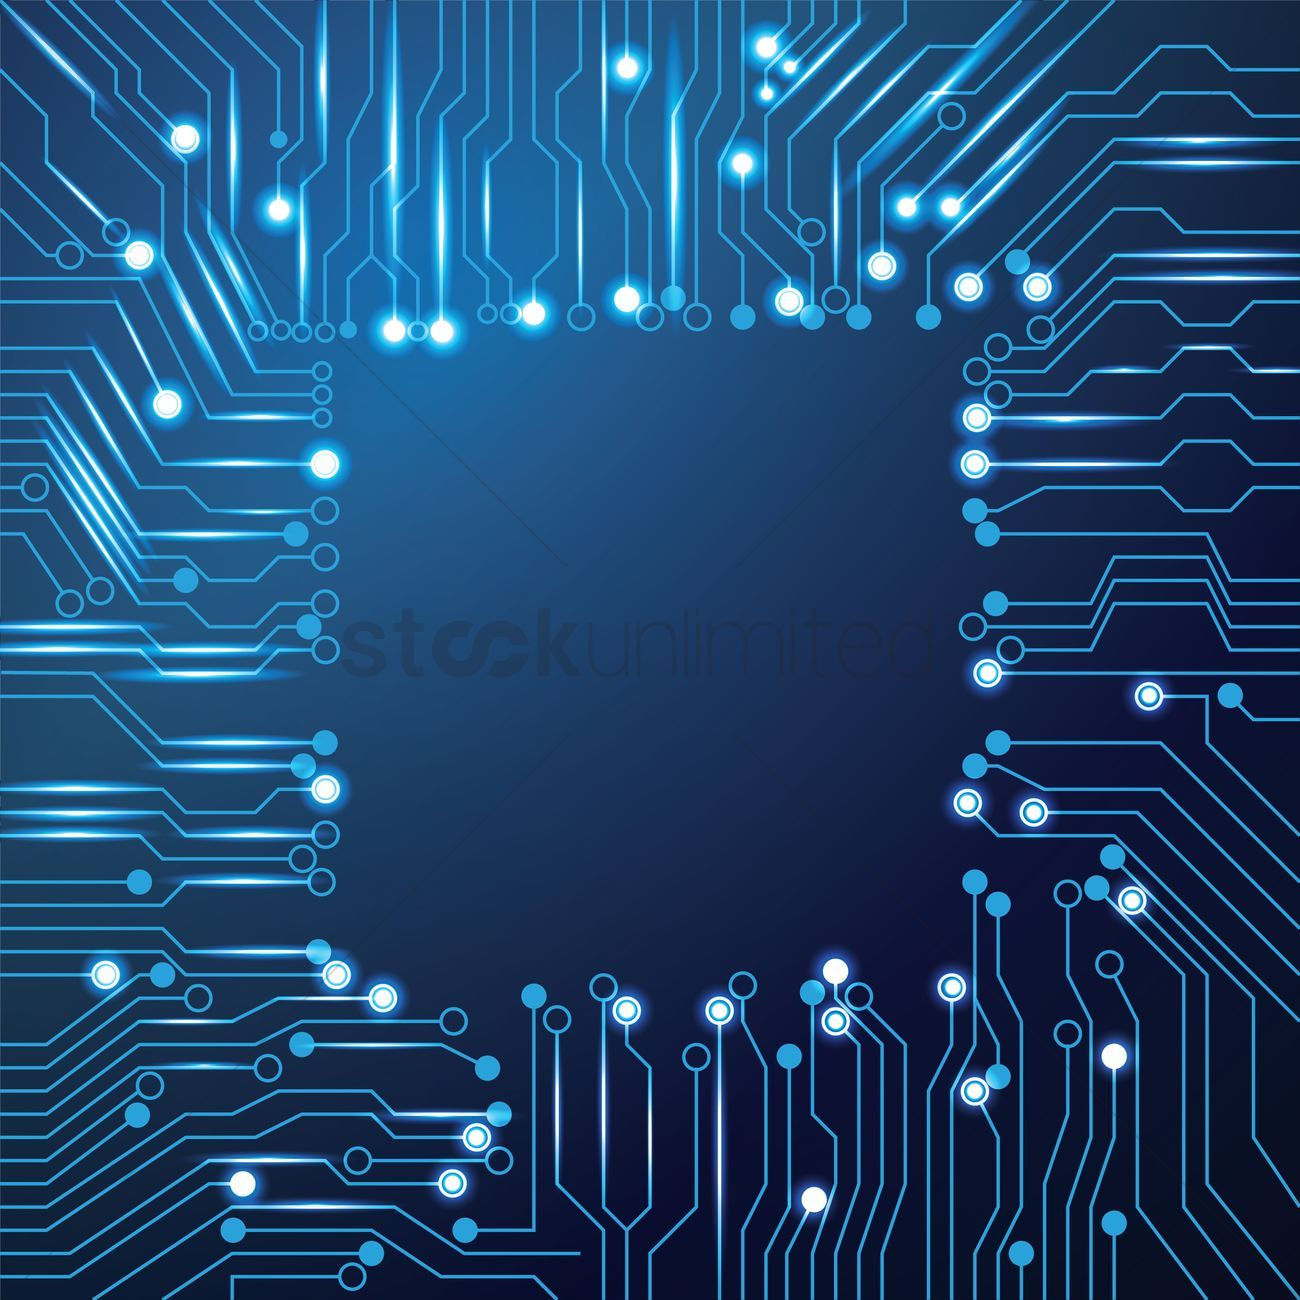 60 Best Free Electronic Circuit Wallpapers Wallpaperaccess Electric Board 1600x900 10 Apk Download Android Personalization Apps